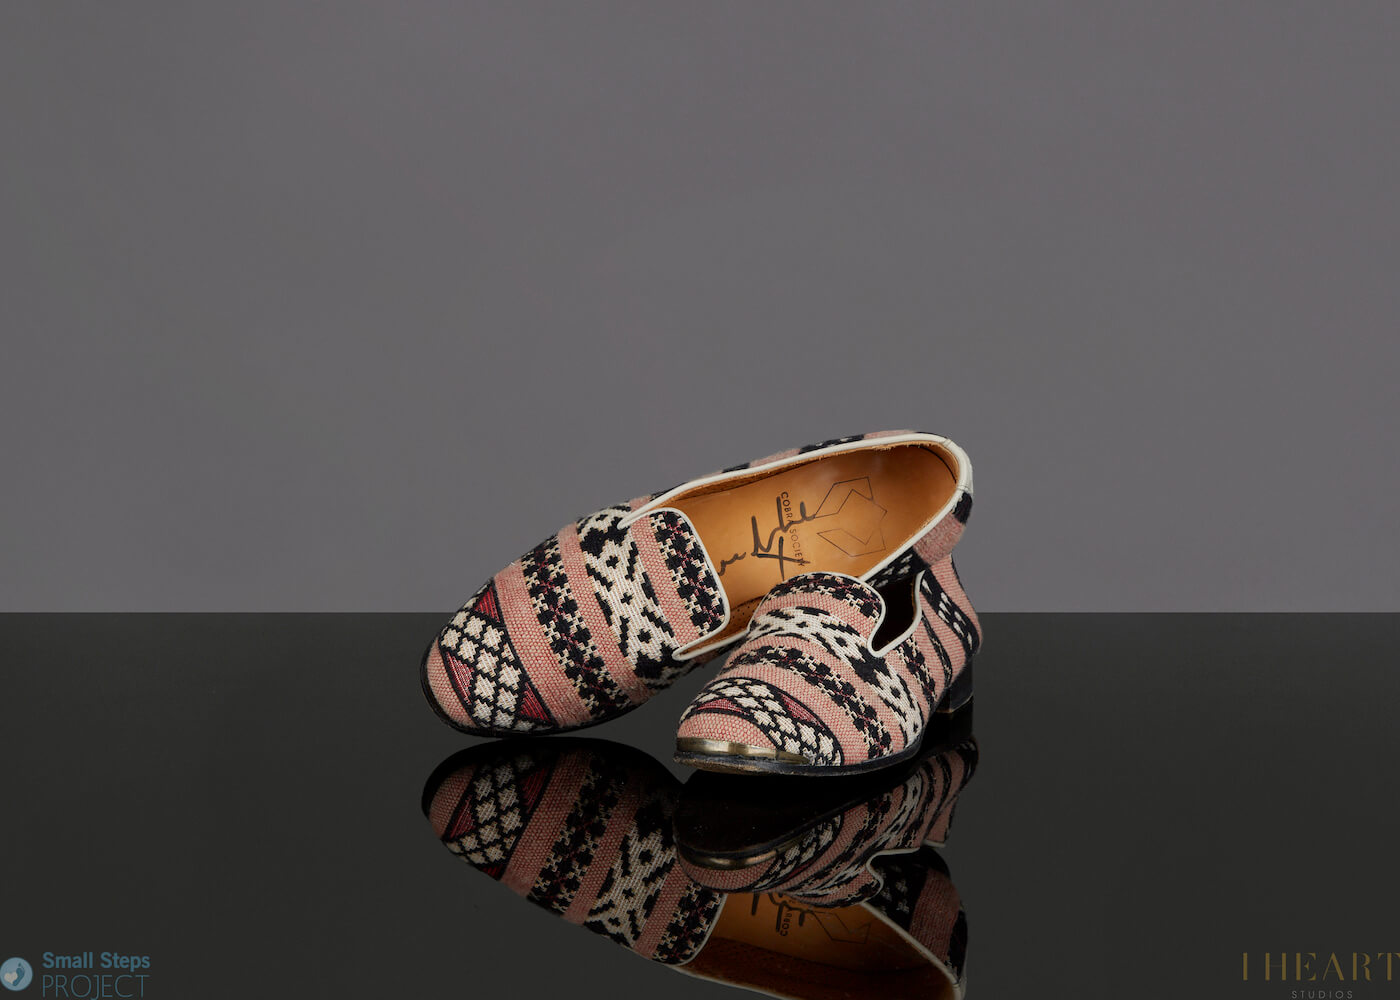 Sienna Miller's shoe donation from 2014